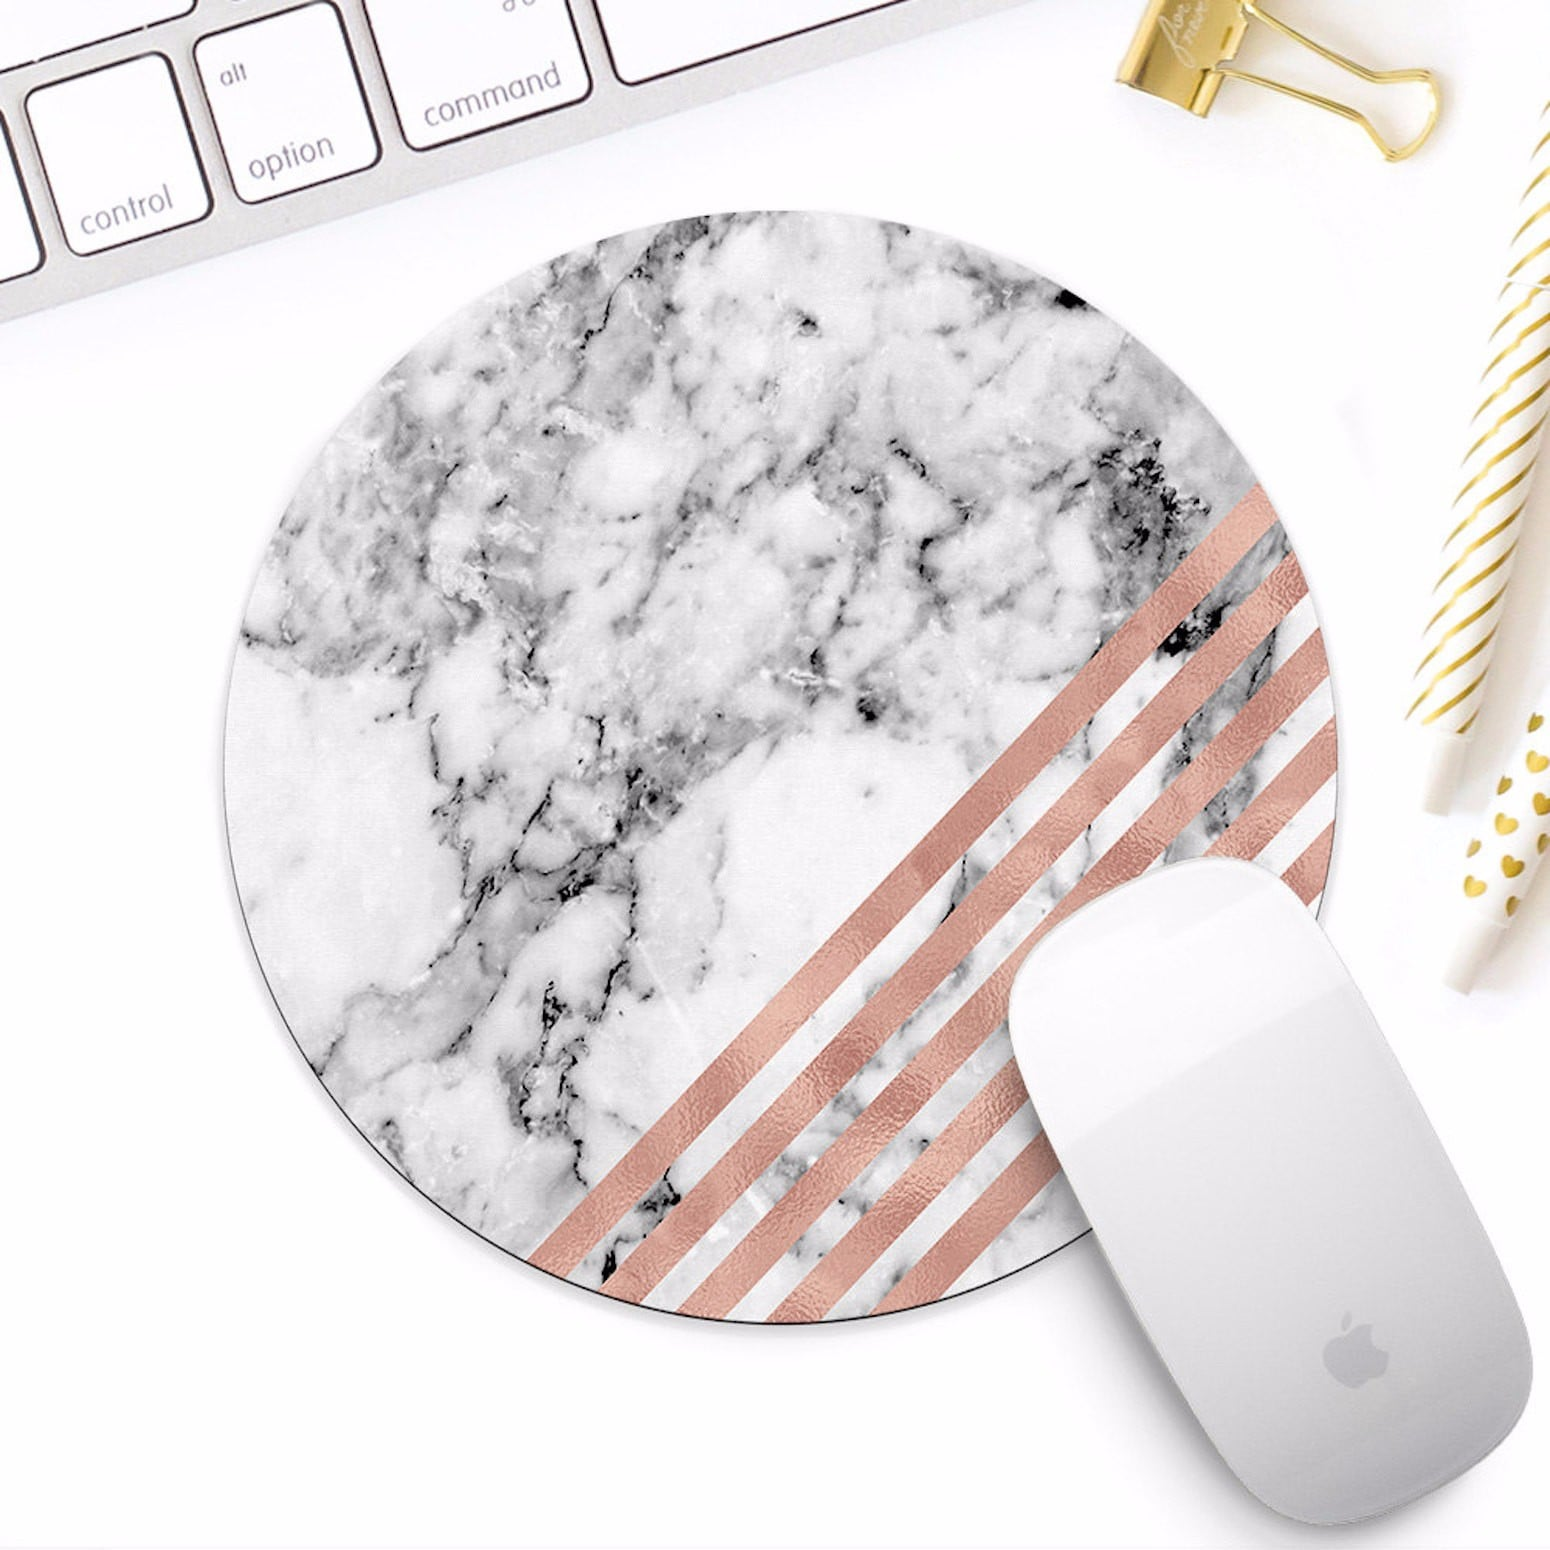 Marble Drink Coasters and Phone Stand Office Desk Decor Pink Accessories Gift Set for Women